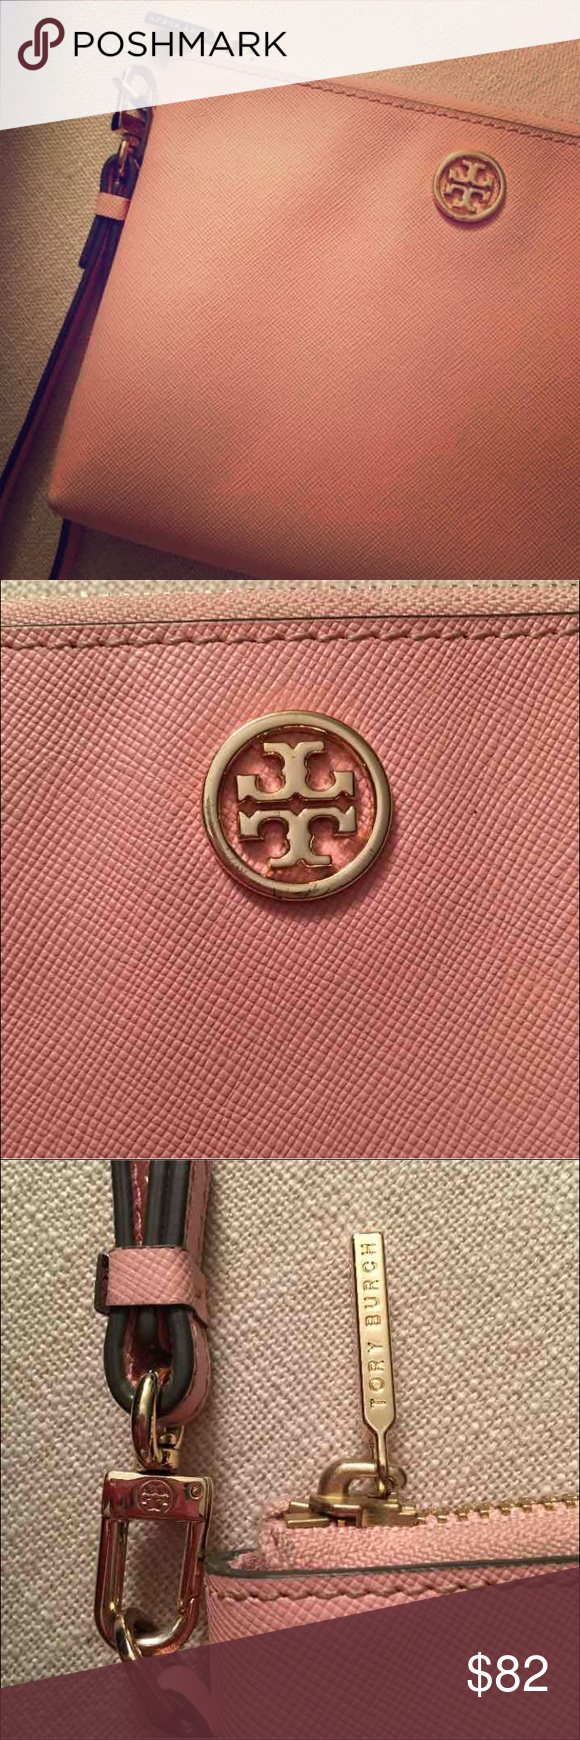 Large Tory Burch Wristlet Light pink Tory Burch Wristlet. Very gently used. Only getting rid of simply because I never carry it!! Tory Burch Bags Clutches & Wristlets